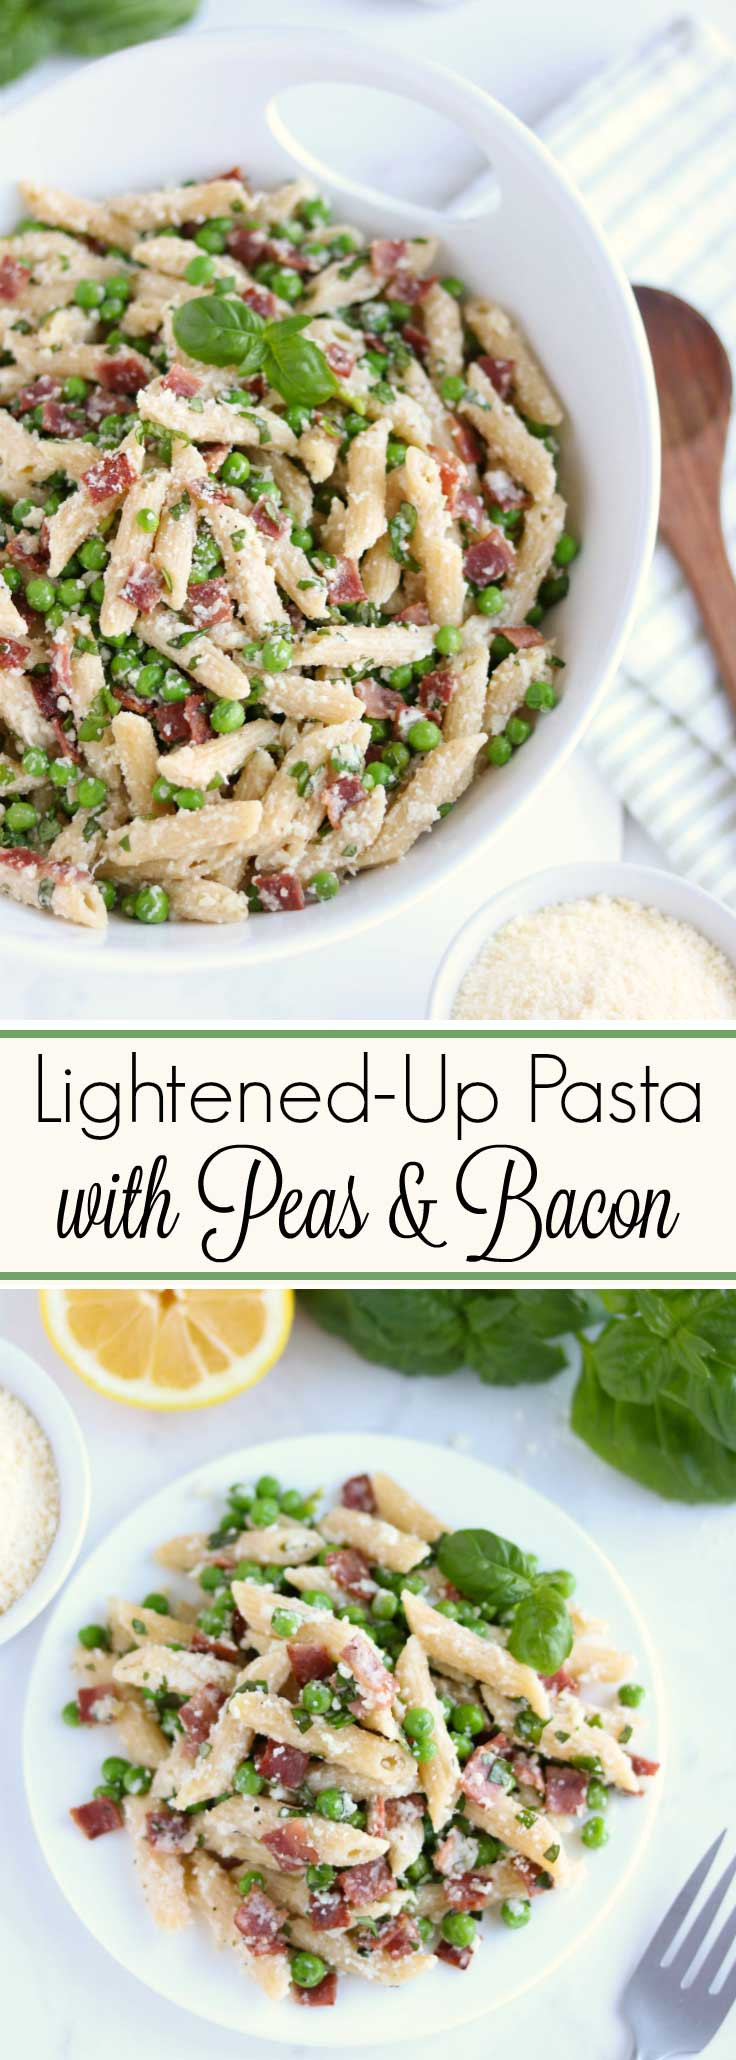 Quick and easy – ready in 20 minutes! This healthy Pasta with Peas and Bacon recipe is bursting with the flavors of smoky bacon, sweet baby peas, bright lemon, and rich parmesan cheese ... plus fresh basil and just a bit of garlic! This easy pasta recipe relies mainly on pantry and icebox staples, and can even be partially made ahead – it's a true family favorite for busy nights! Pasta with bacon is a true classic – and you'll love this healthier, delicious twist! | www.TwoHealthyKitchens.com